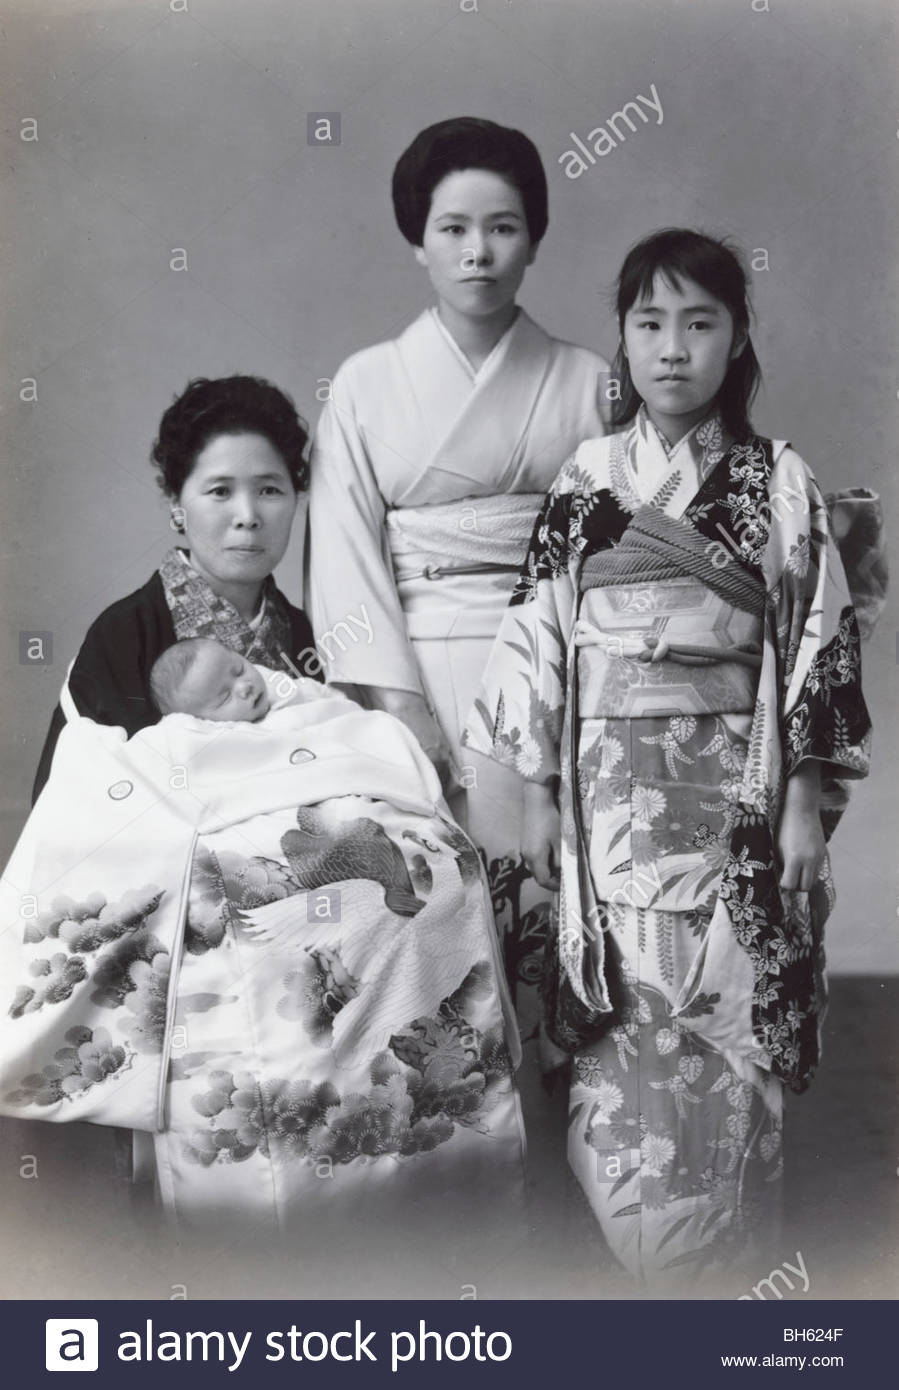 formal portrait of Japanese women with new born baby 1965 - Stock Image